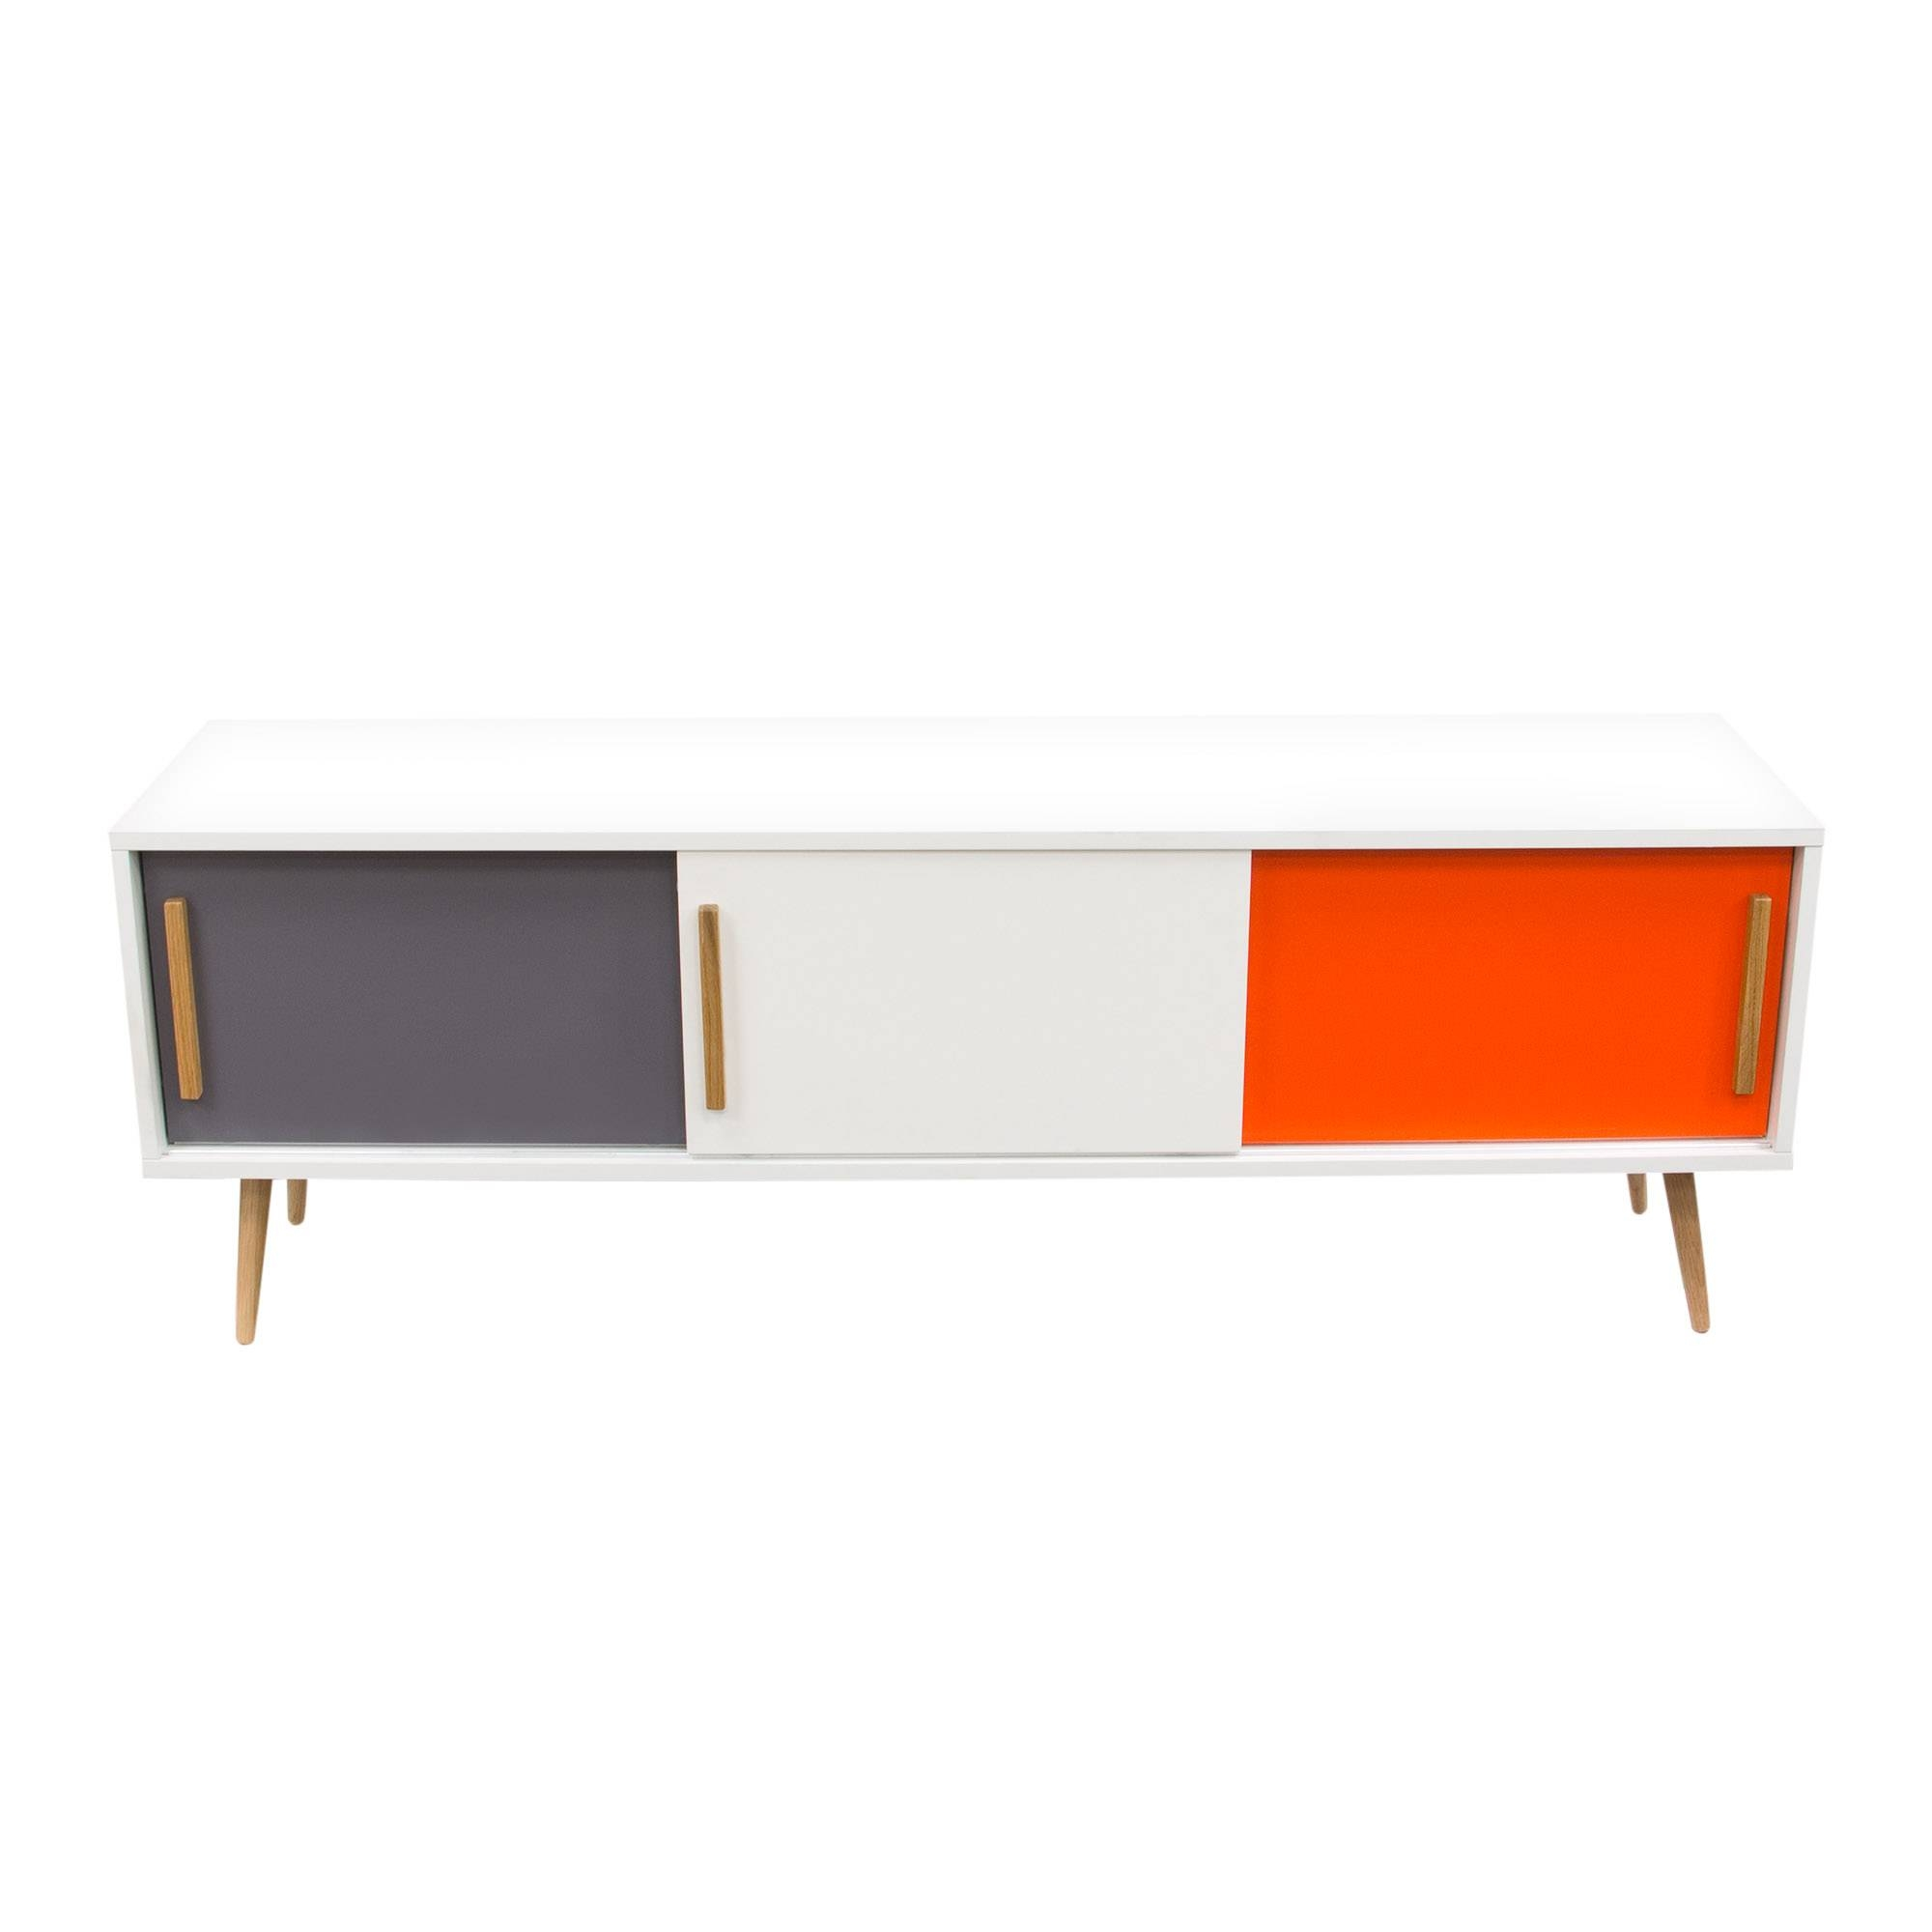 Mc Vanderbilt And Cabrini 2.2 Tv Stand And Panel White Gloss – Pop in Orange Tv Stands (Image 5 of 15)